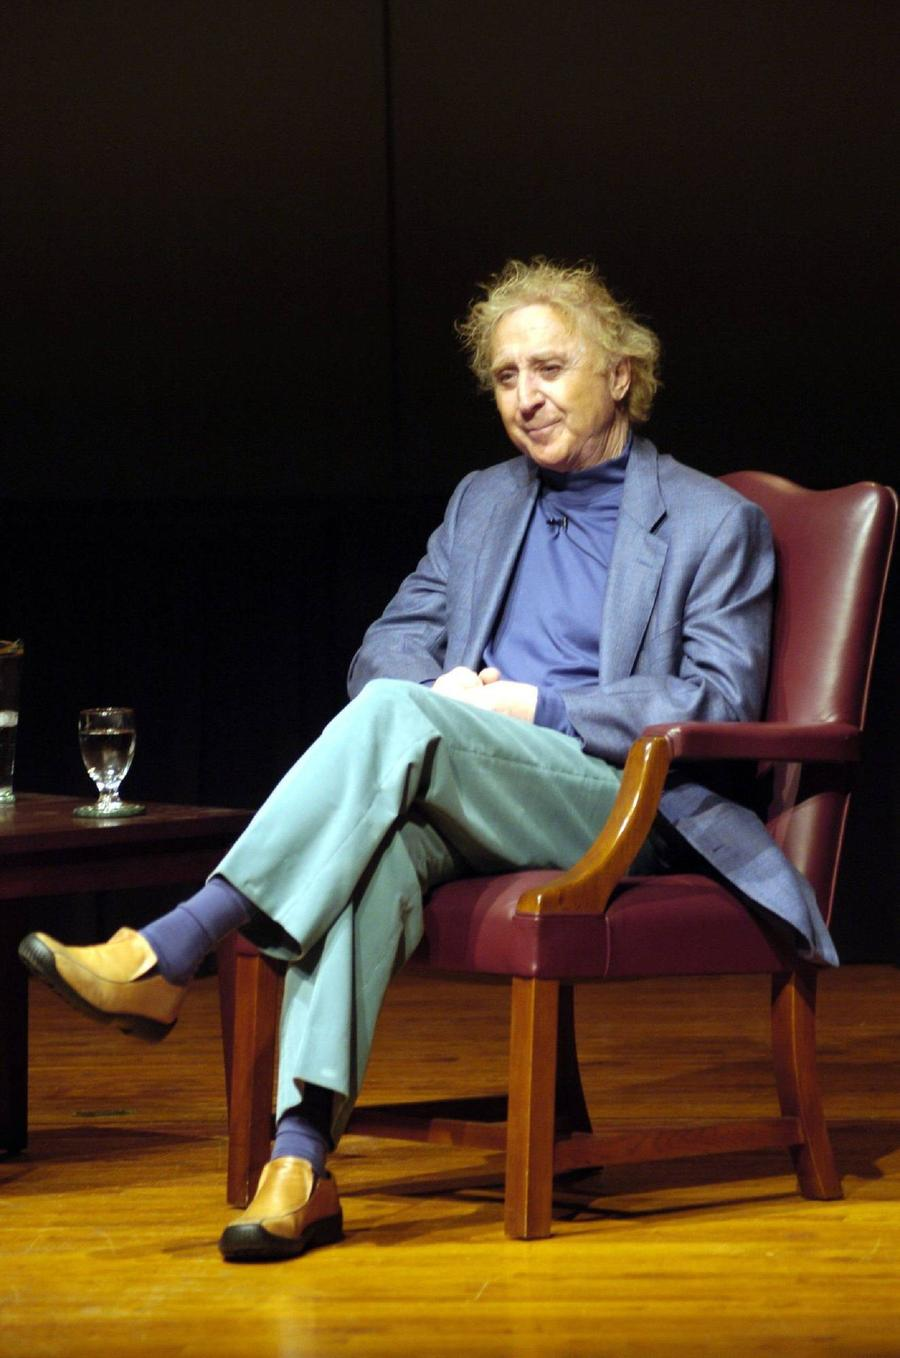 Willy Wonka Child Star Michael Bollner Pays Tribute To Gene Wilder